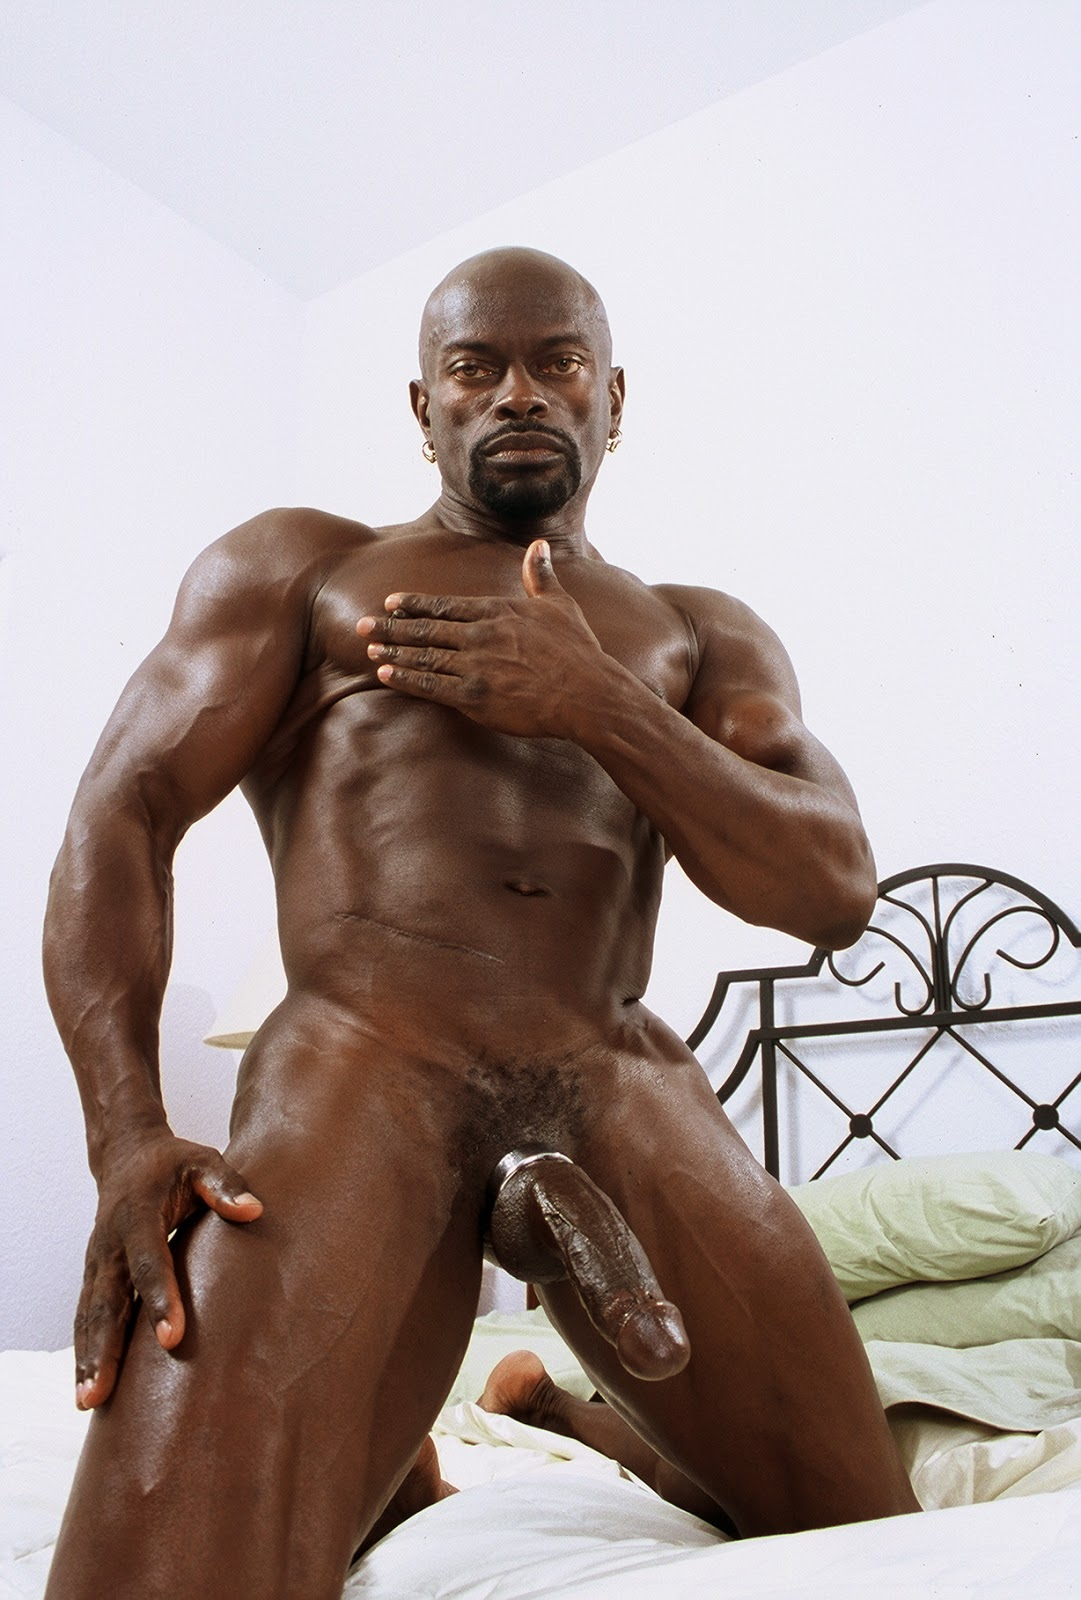 nude gay bodybuilder